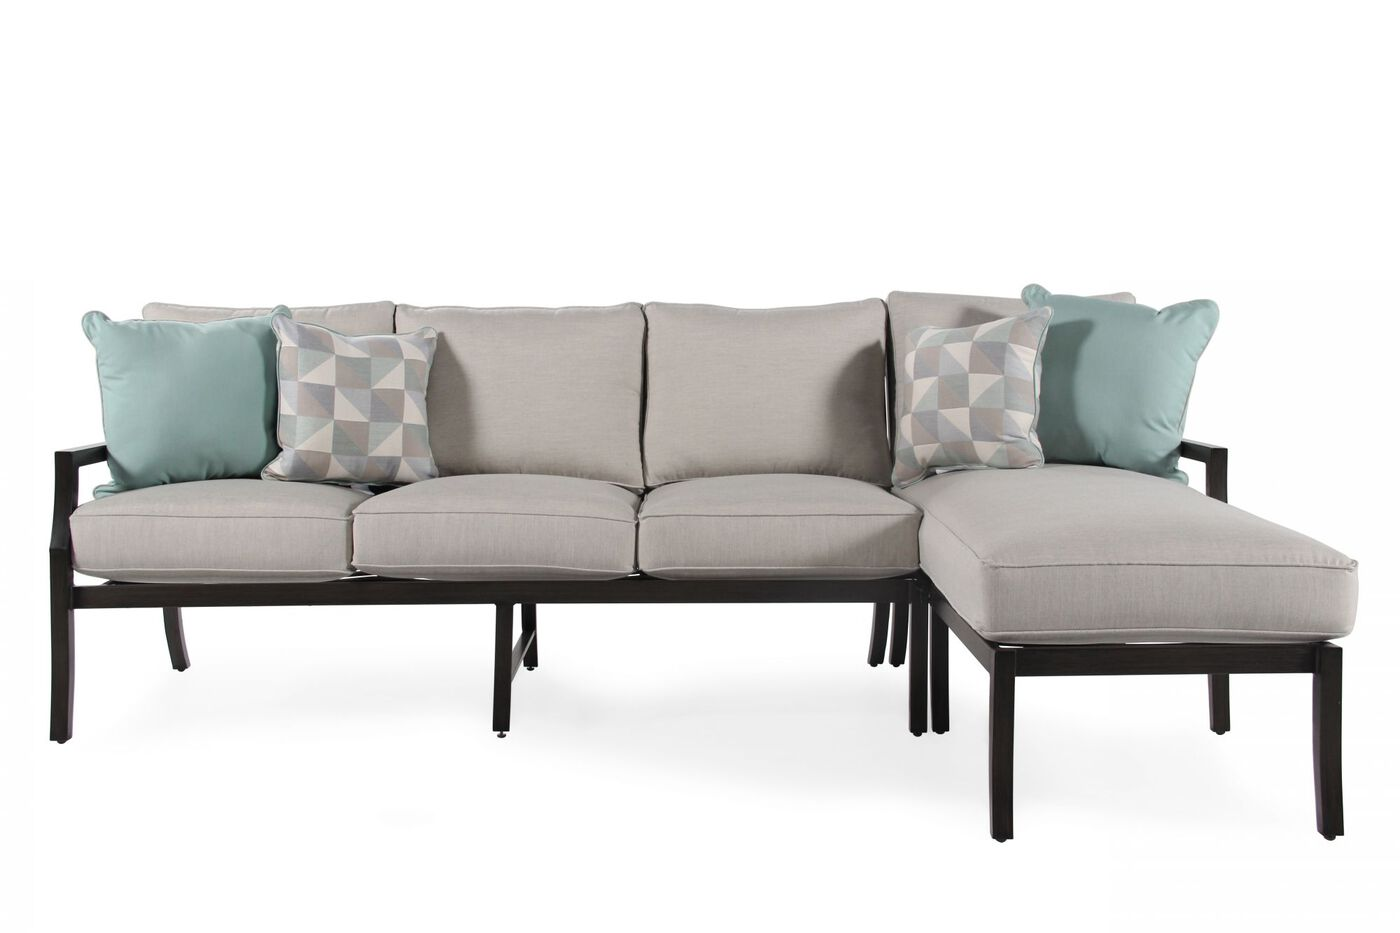 Sofa and chaise set for Agio chaise lounge